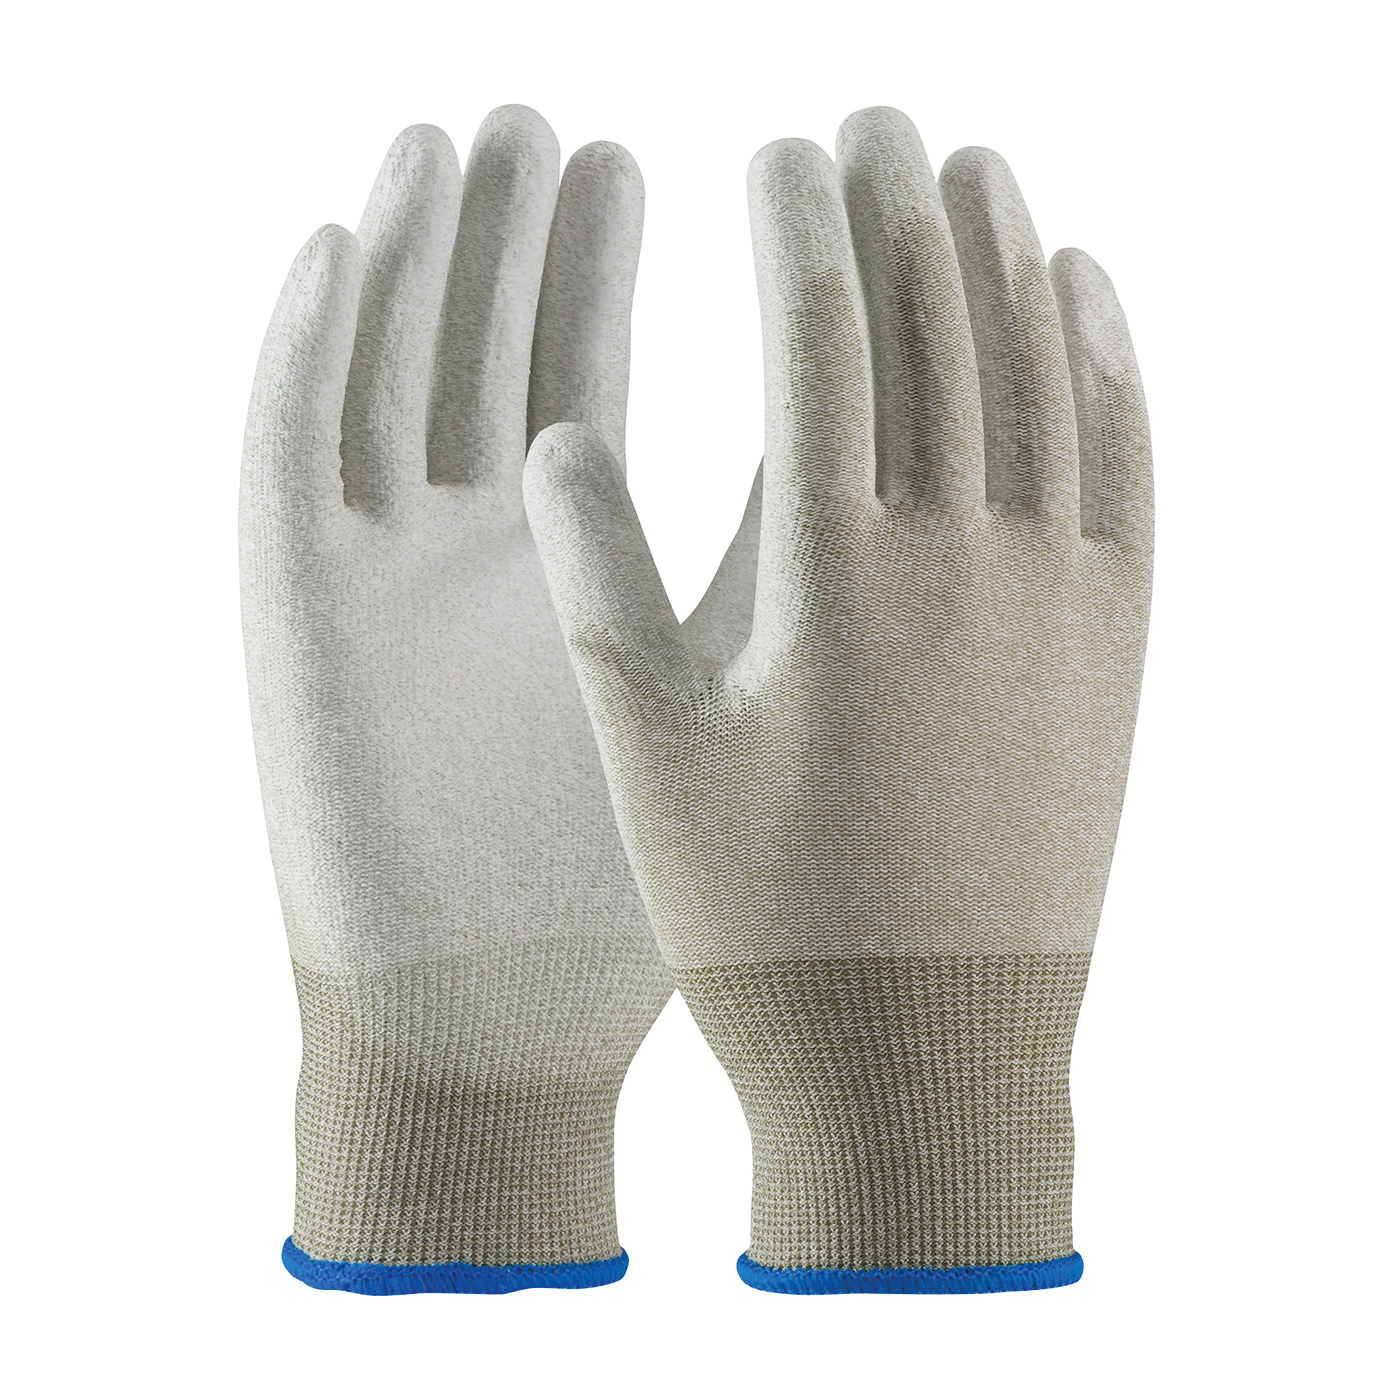 PIP® CleanTeam® 40-6415/L 40-6145 Antistatic Gloves, Seamless Style, 15 ga Nylon/Copper Fiber Yarn, Copper/White, Continuous Knit Wrist Cuff, Polyurethane with Smooth Grip Coating, 9.7 in L, Resists: Abrasion, Cut, Puncture and Tear